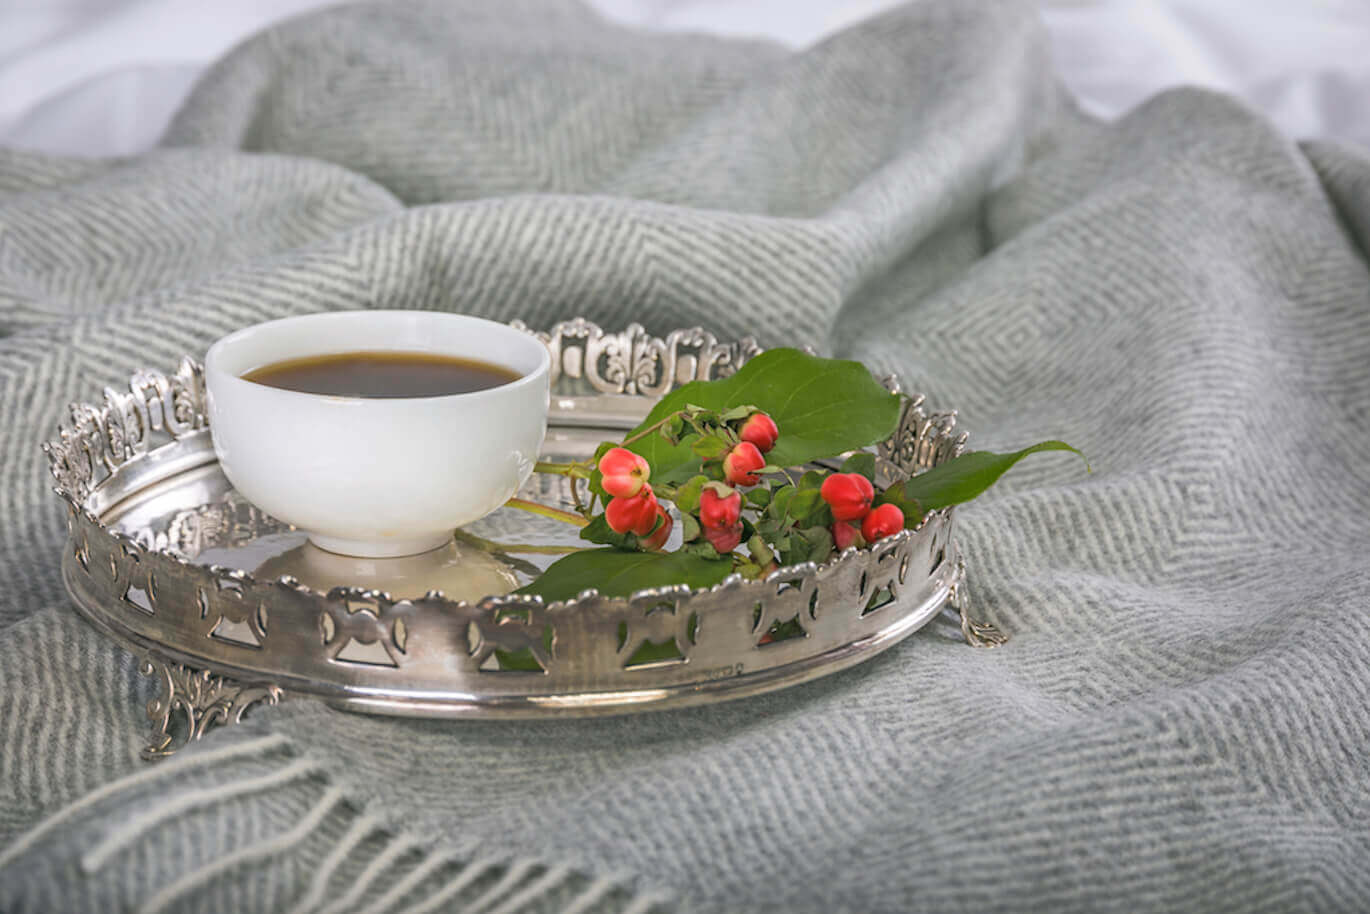 a cup of tea on a tray on top of a grey throw